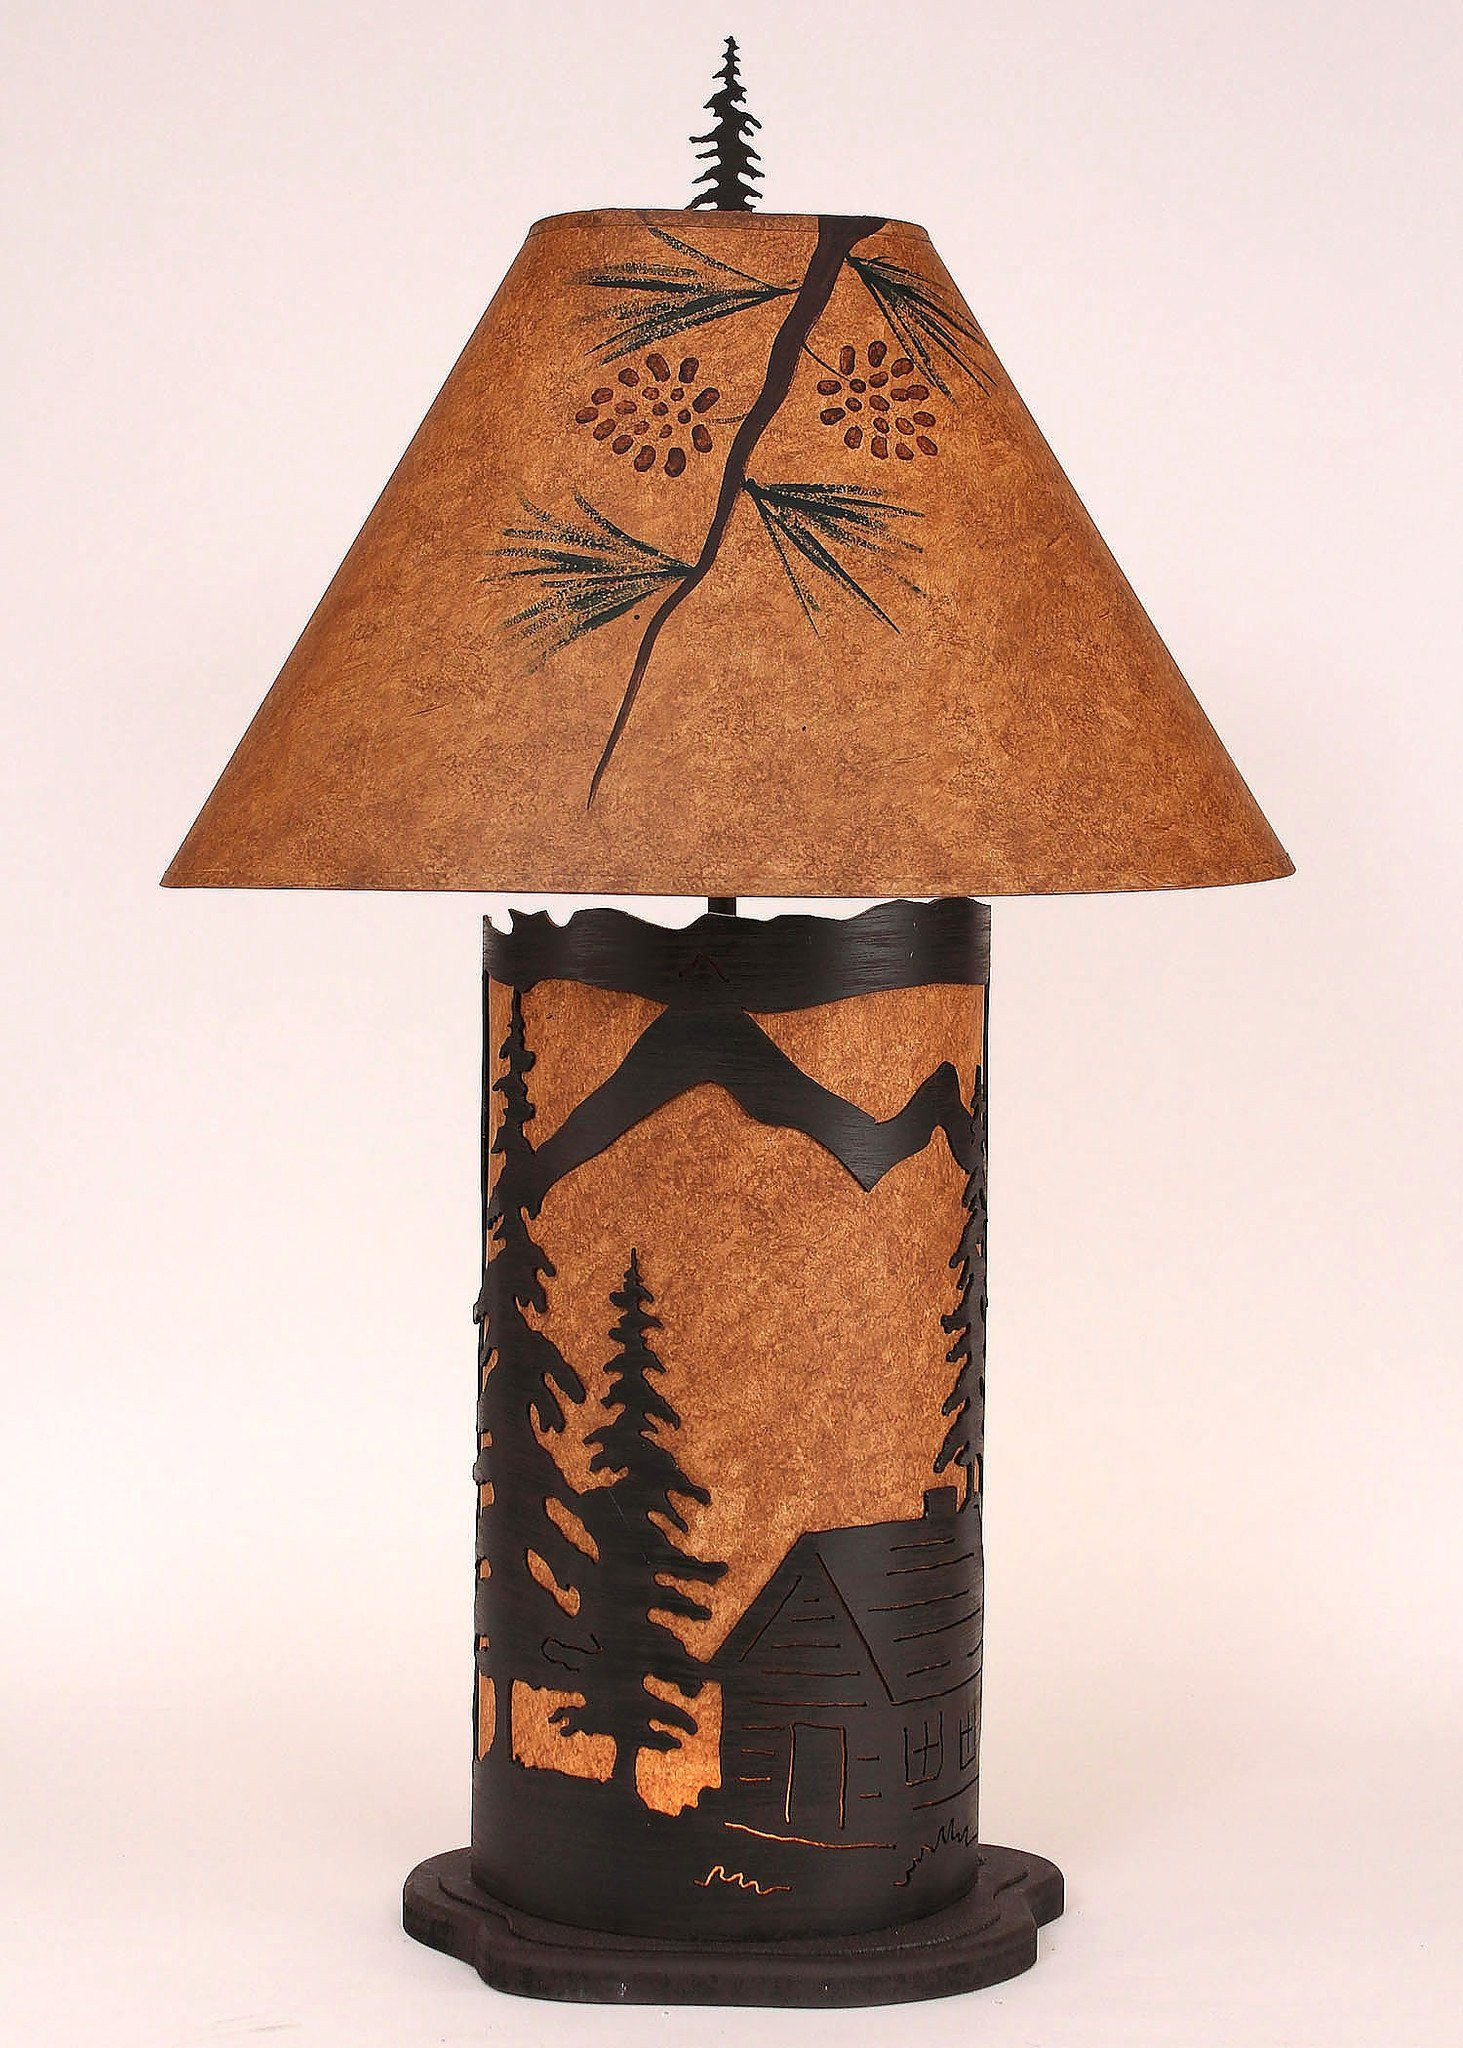 Large Cabin Scene Night Table Lamp in Rustic Brown